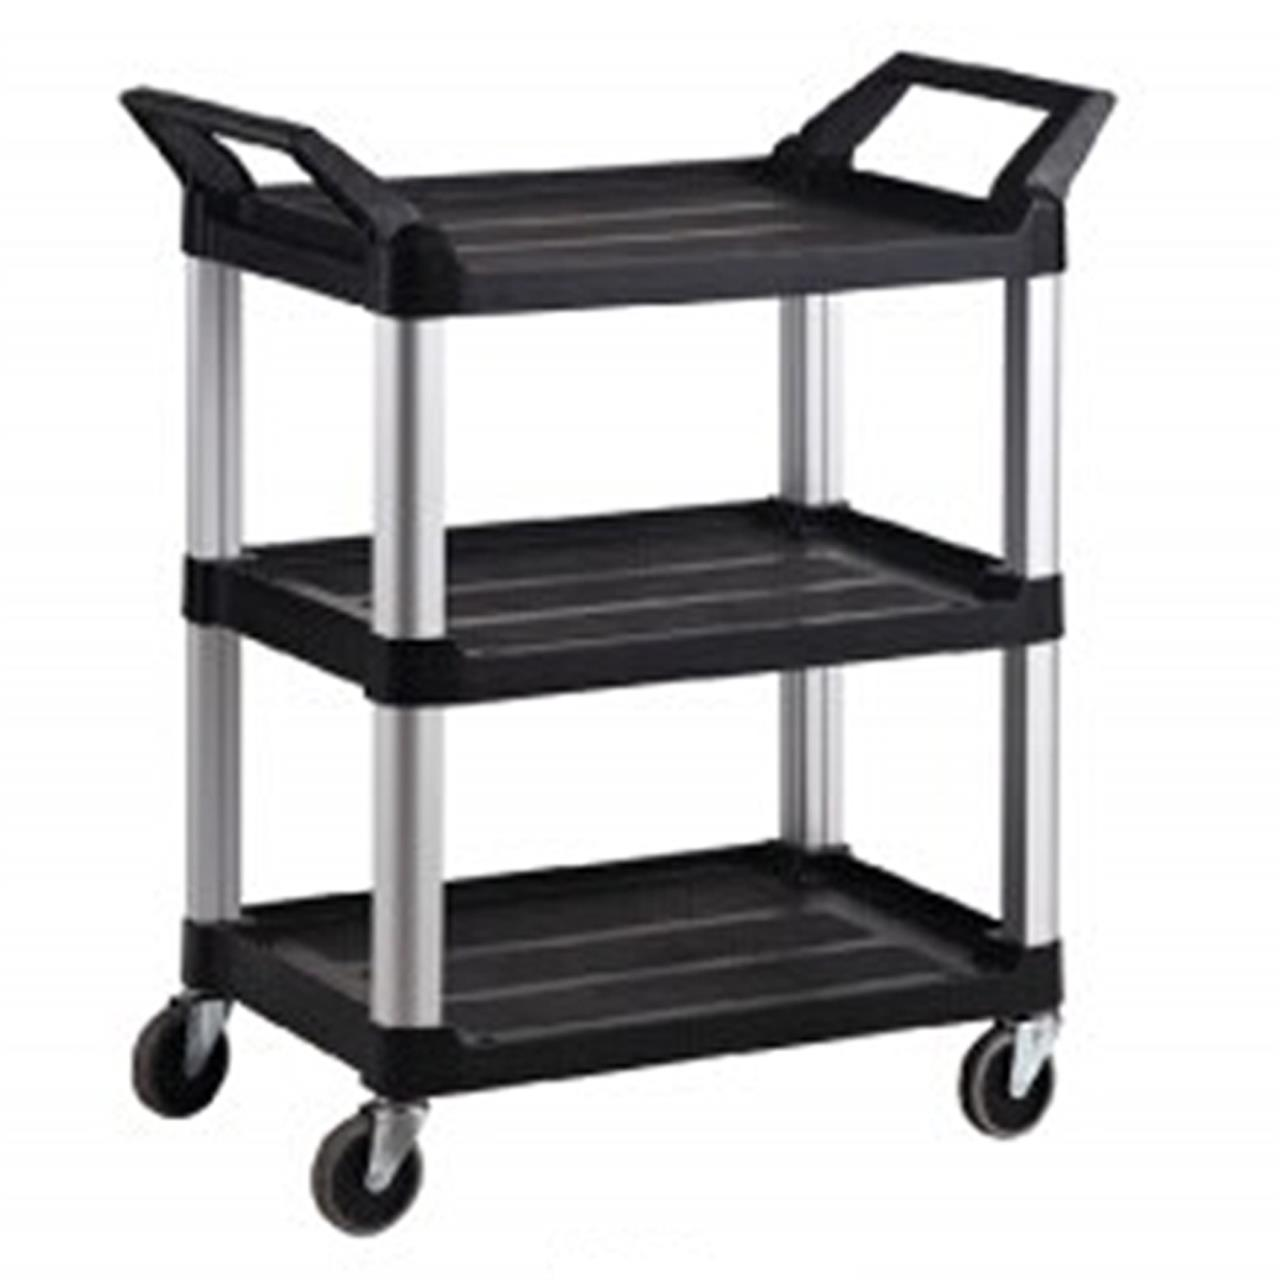 trust-3-tier-small-utility-service-cart-black